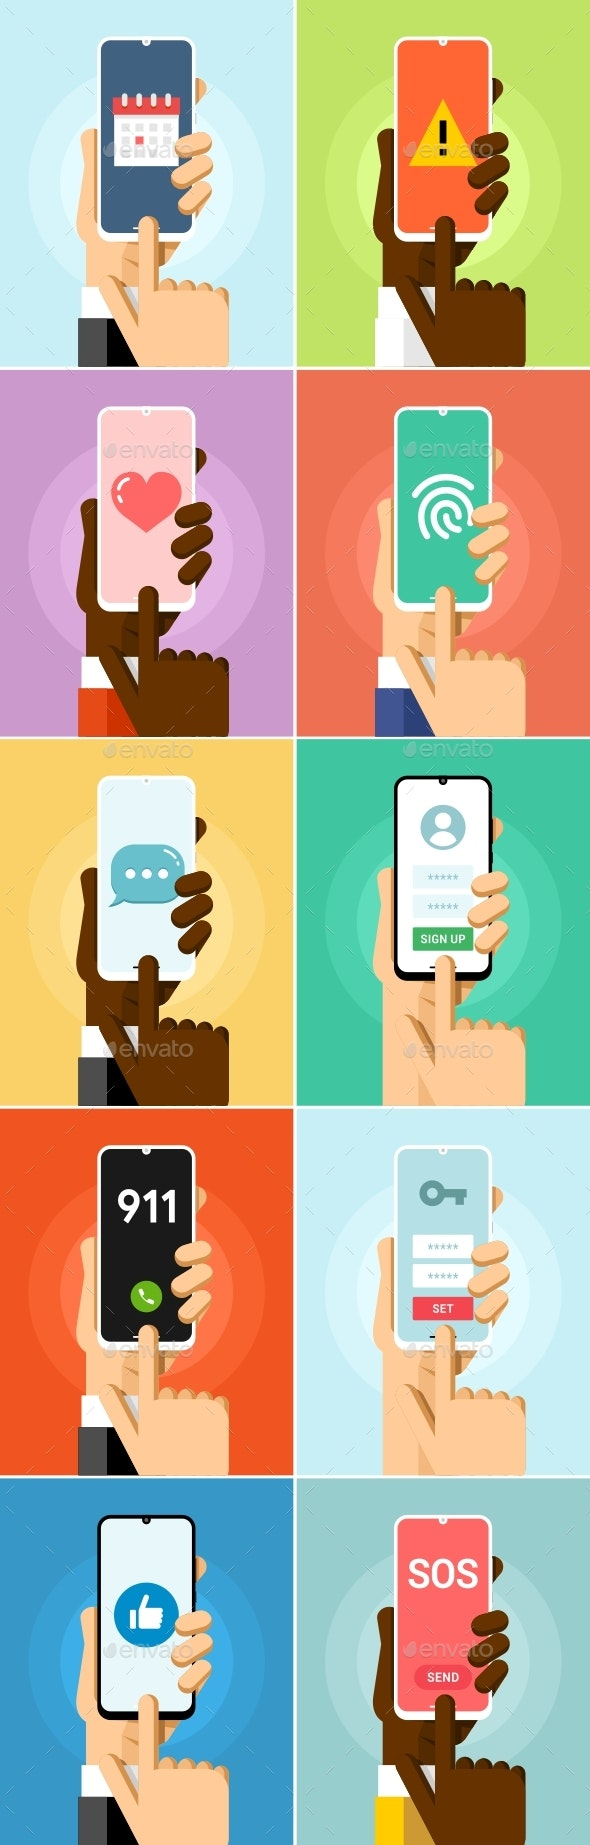 Phone in Hand Mock-Up Flat Vector Set 7 - Communications Technology